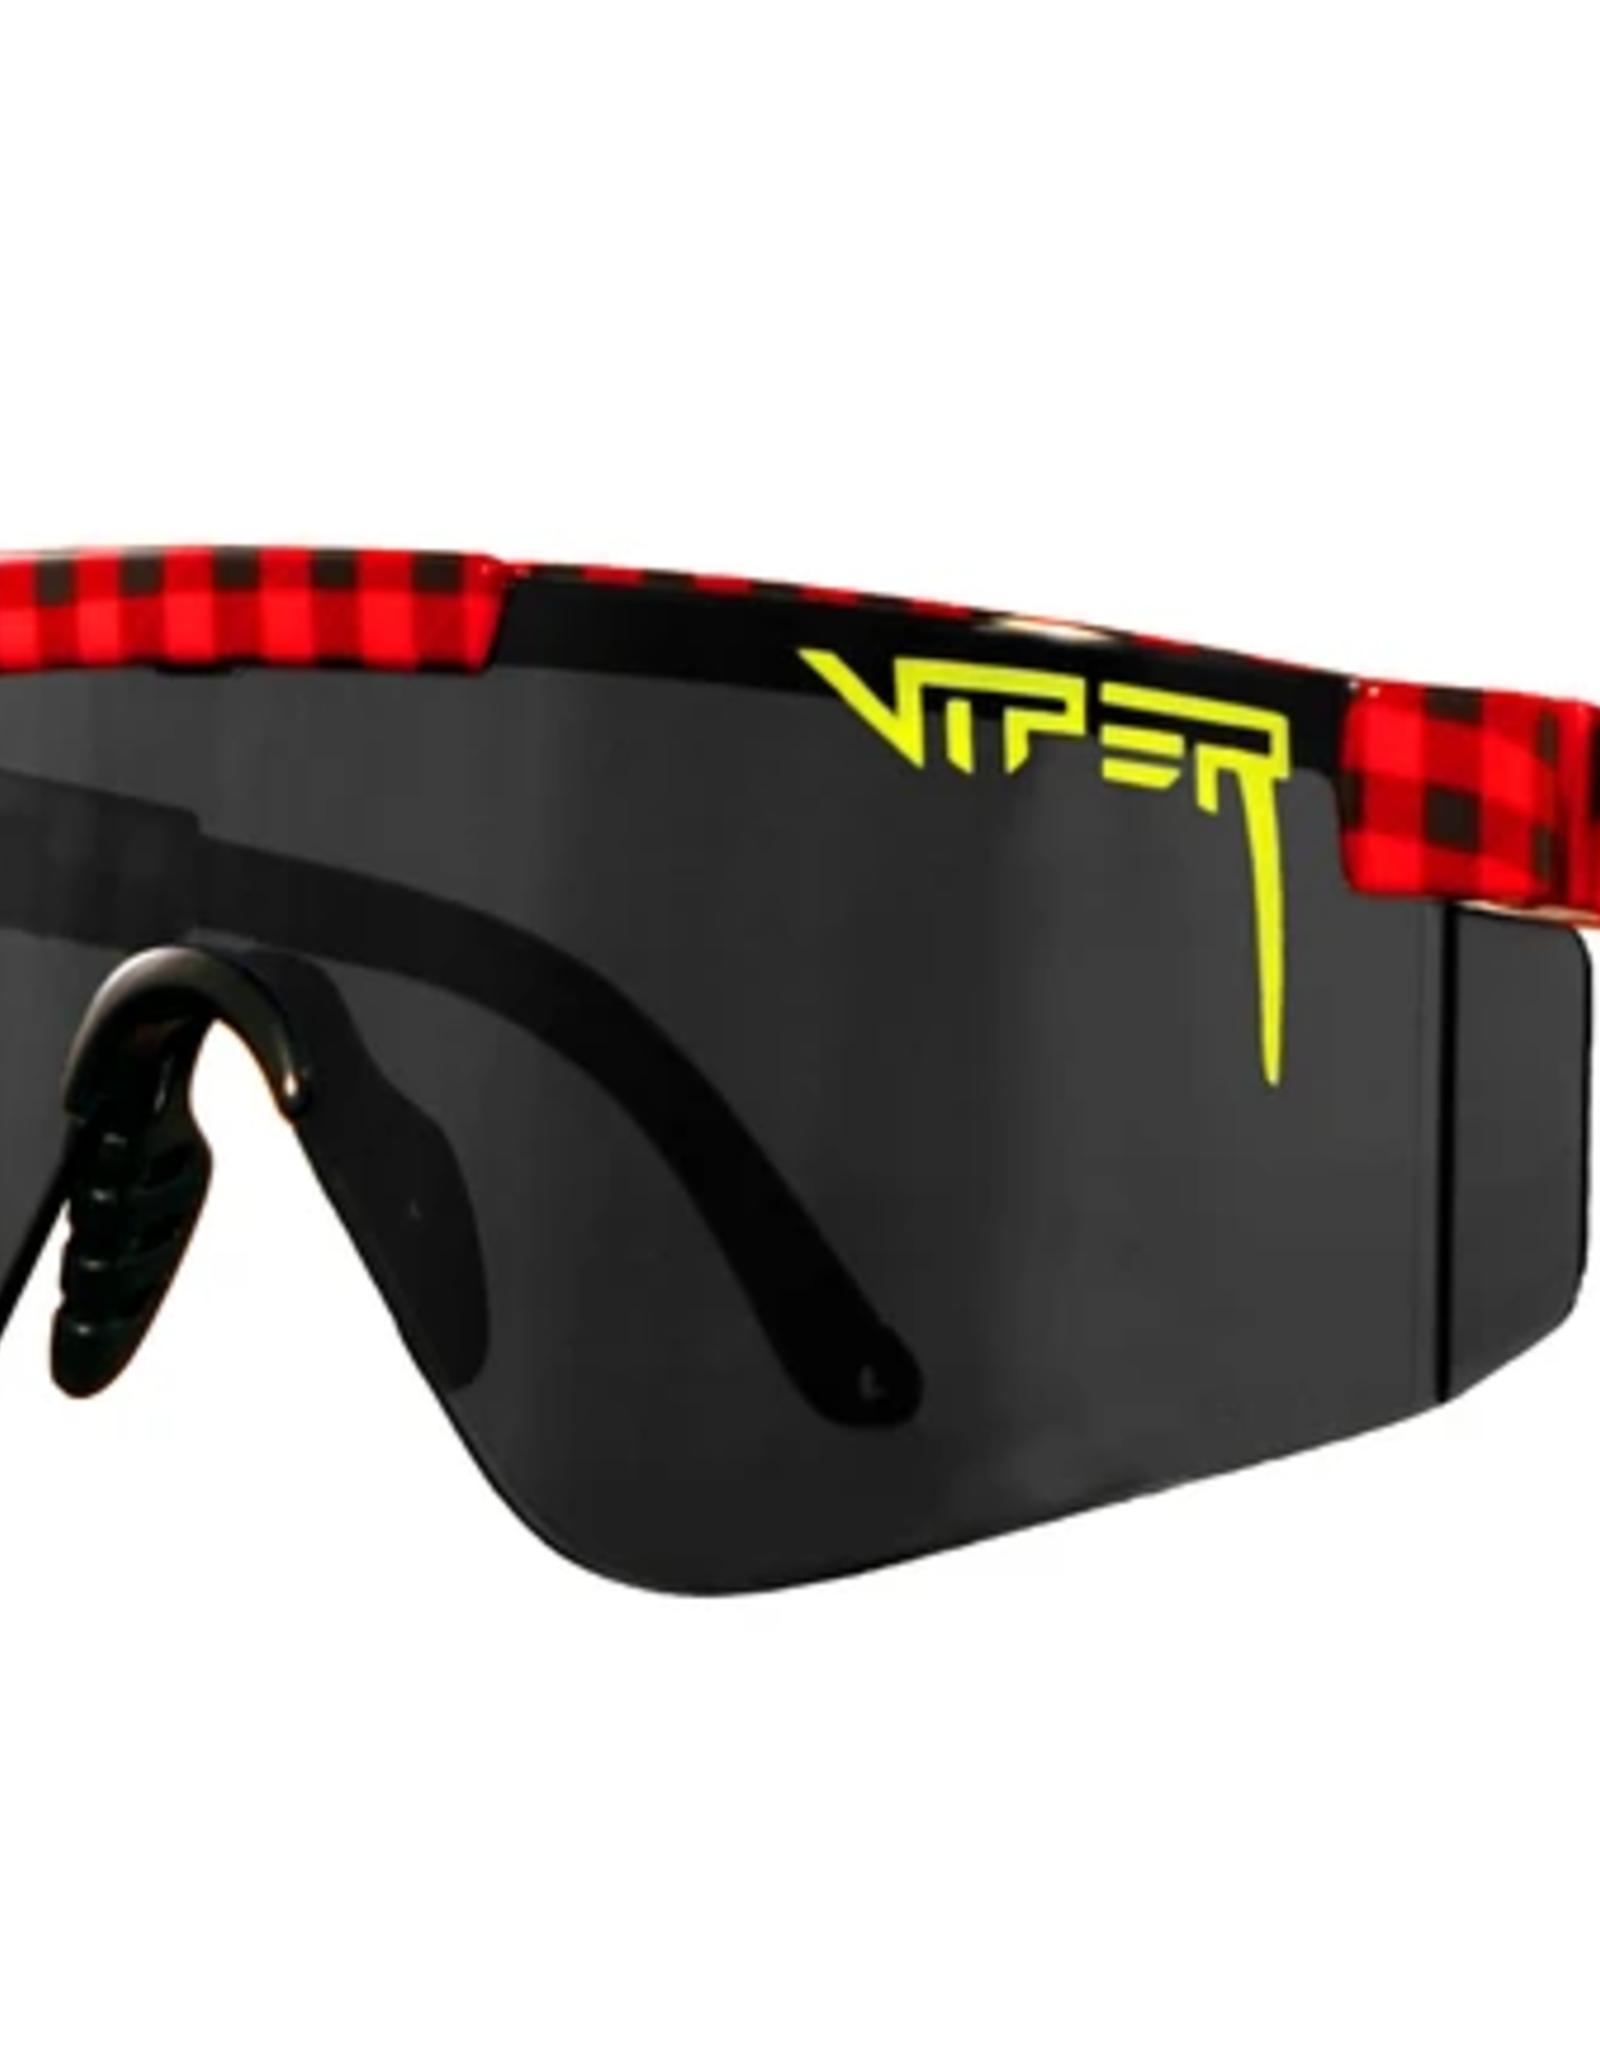 Pit Viper Pit Viper - 2000s - THE PARTY IN PLAID (YALLN33D2STROK3S)